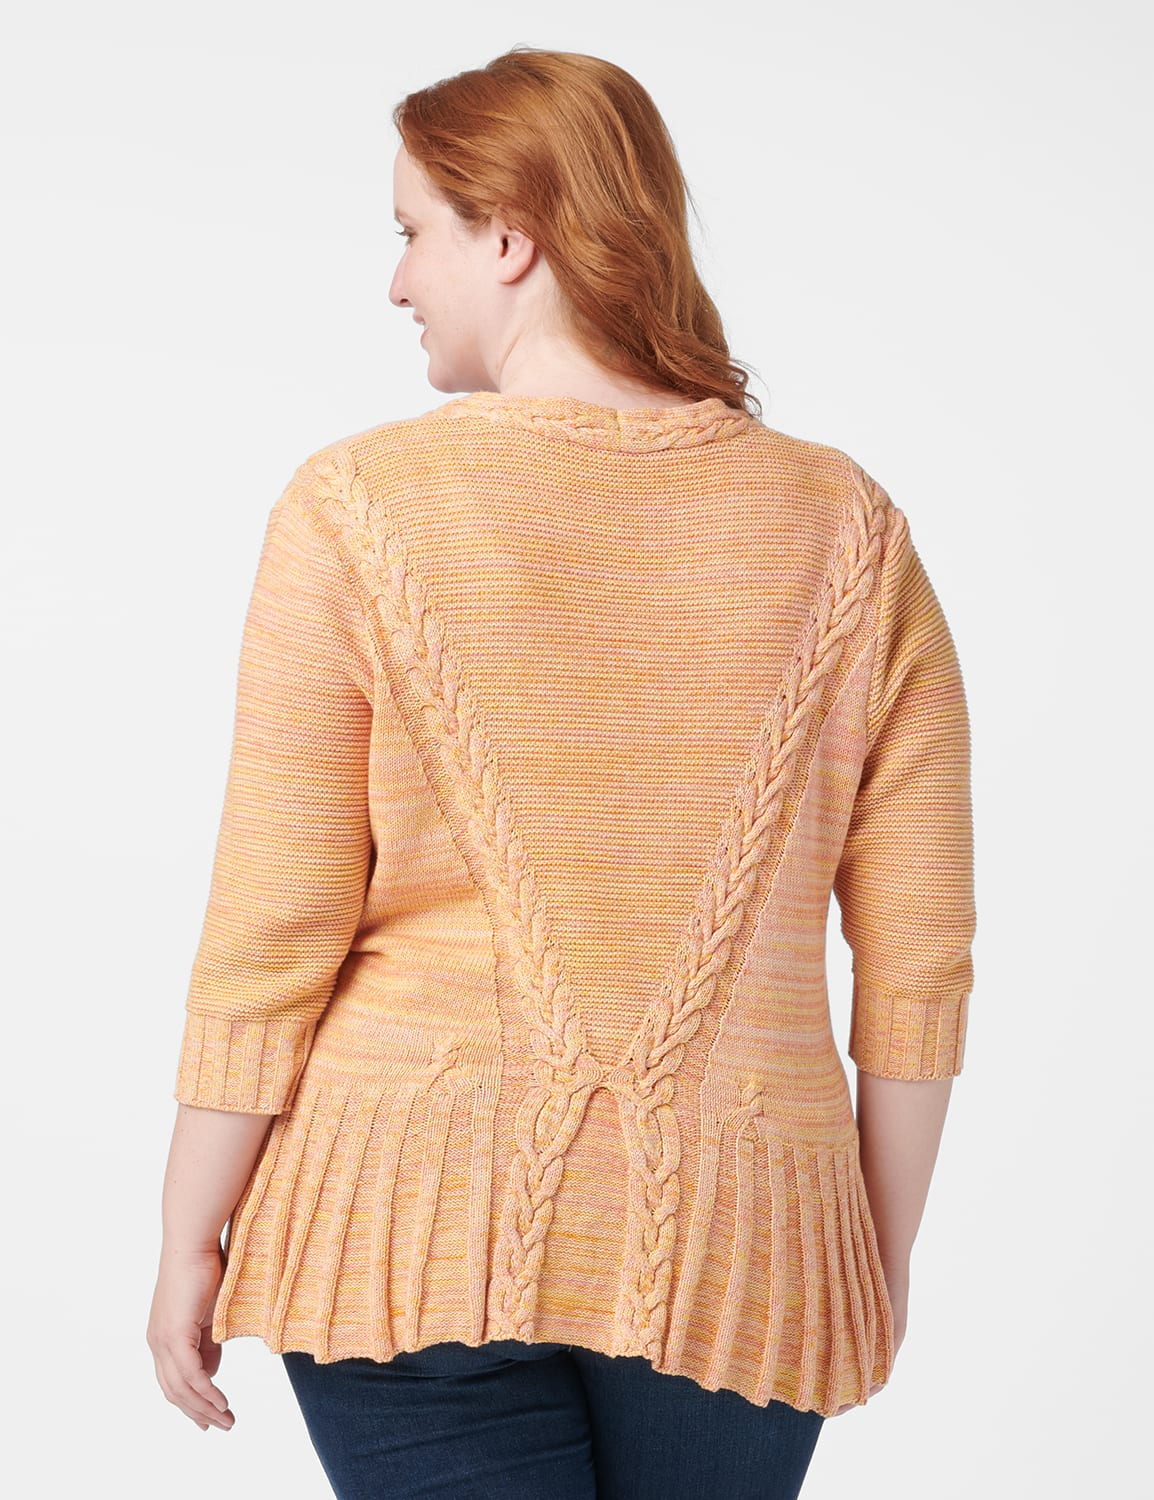 Roz & Ali Marled Button Cardigan - Oatmeal Combo - Back